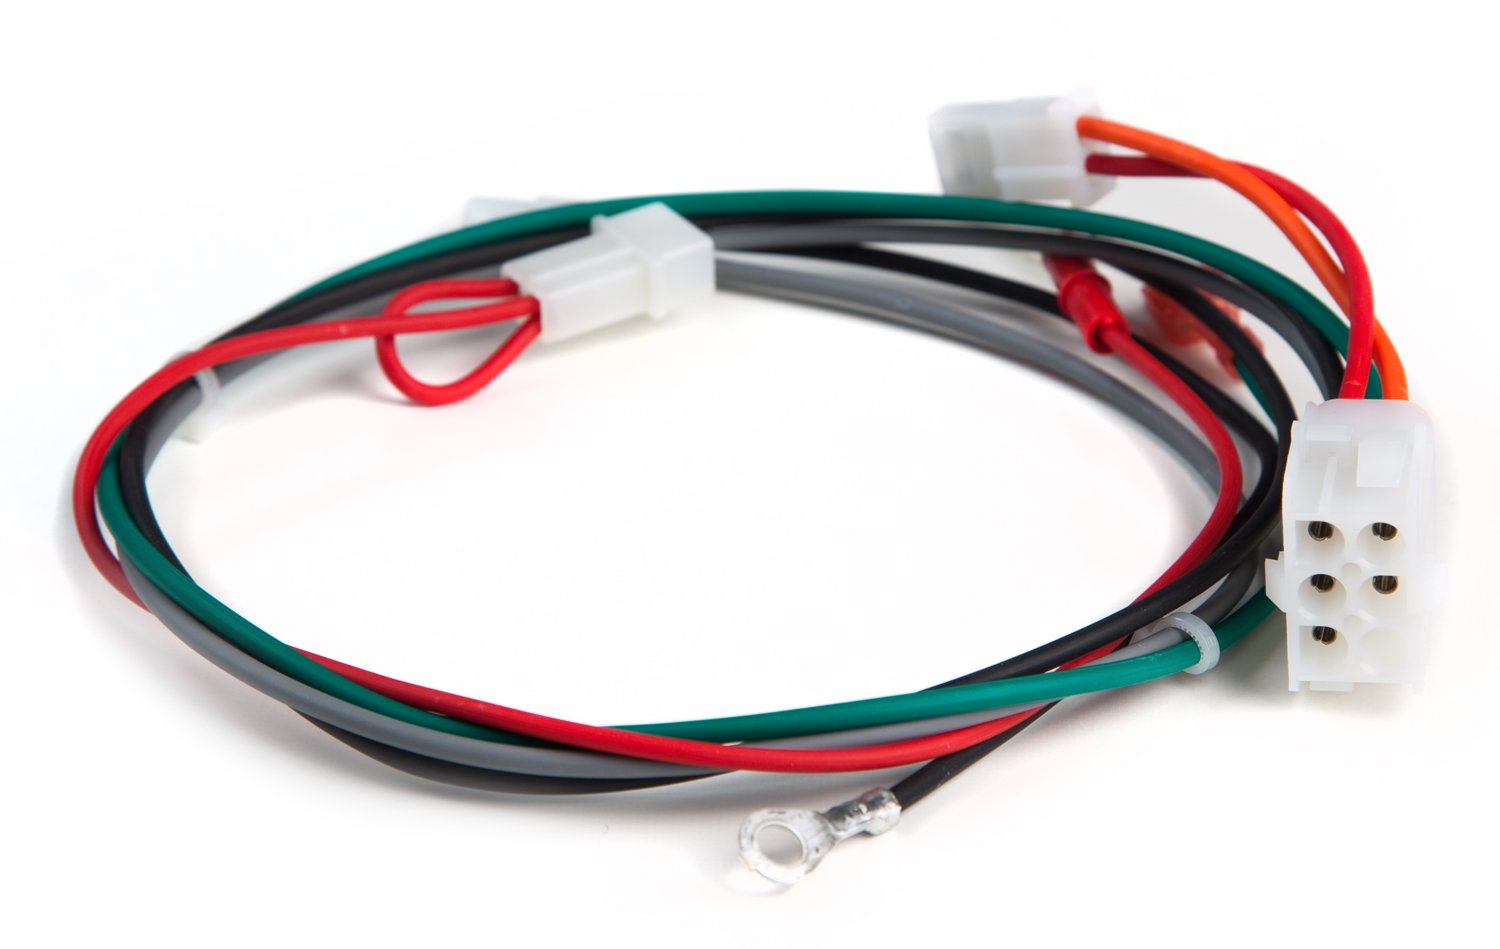 Amazon.com : Briggs & Stratton 698329 Wiring Harness Replacement Part :  Lawn Mower Tune Up Kits : Garden & Outdoor